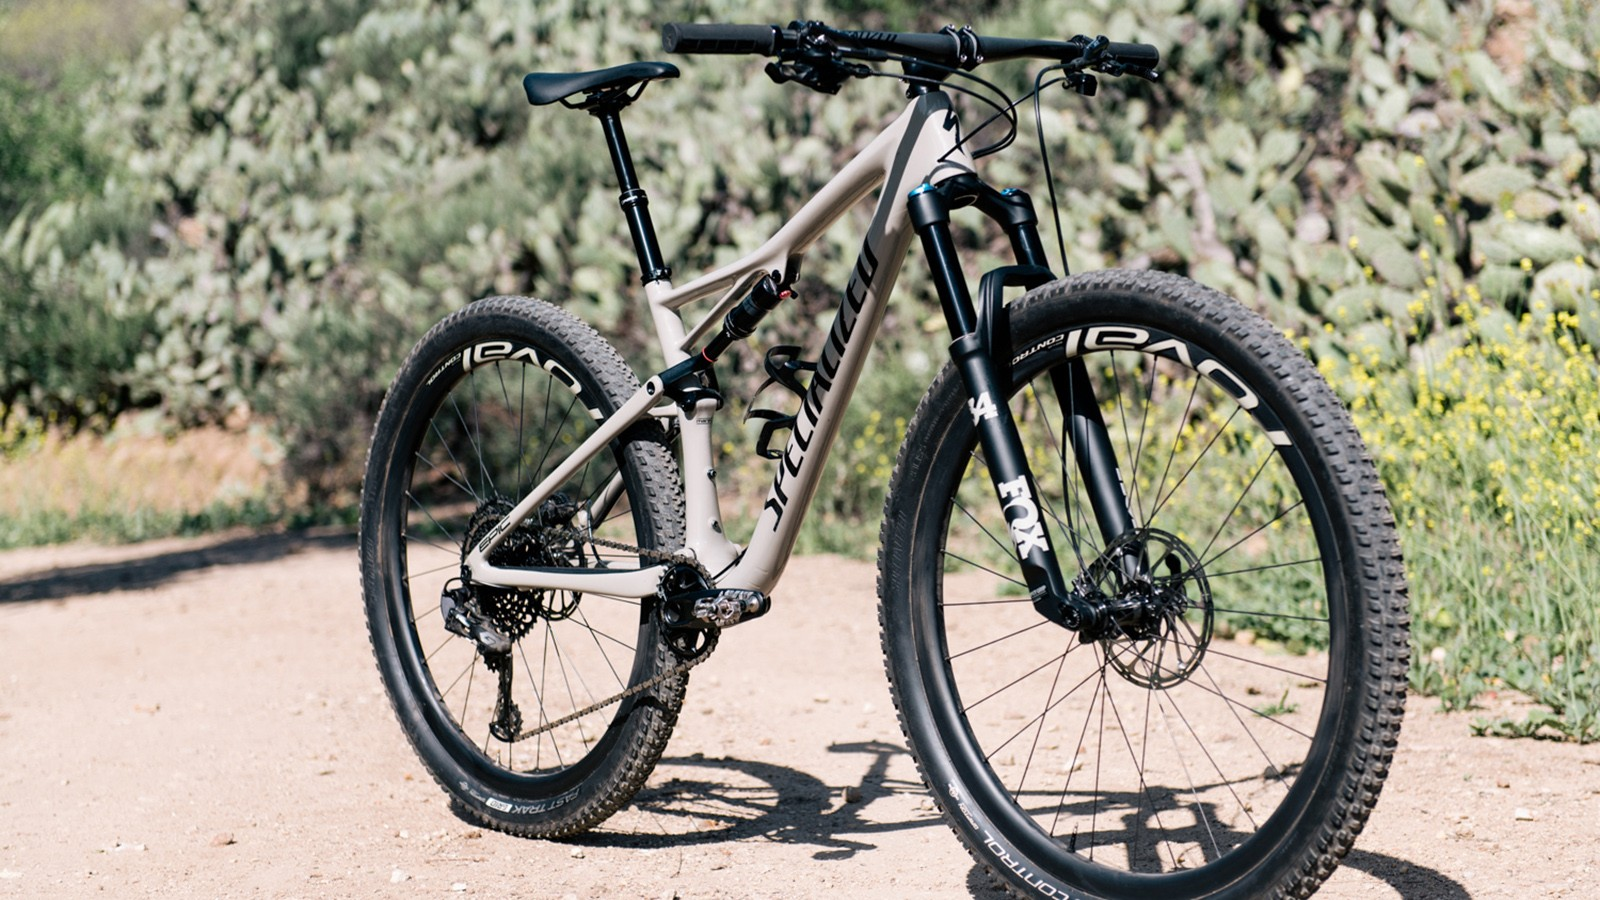 The updated Specialized Epic EVO features a longer travel 120mm fork